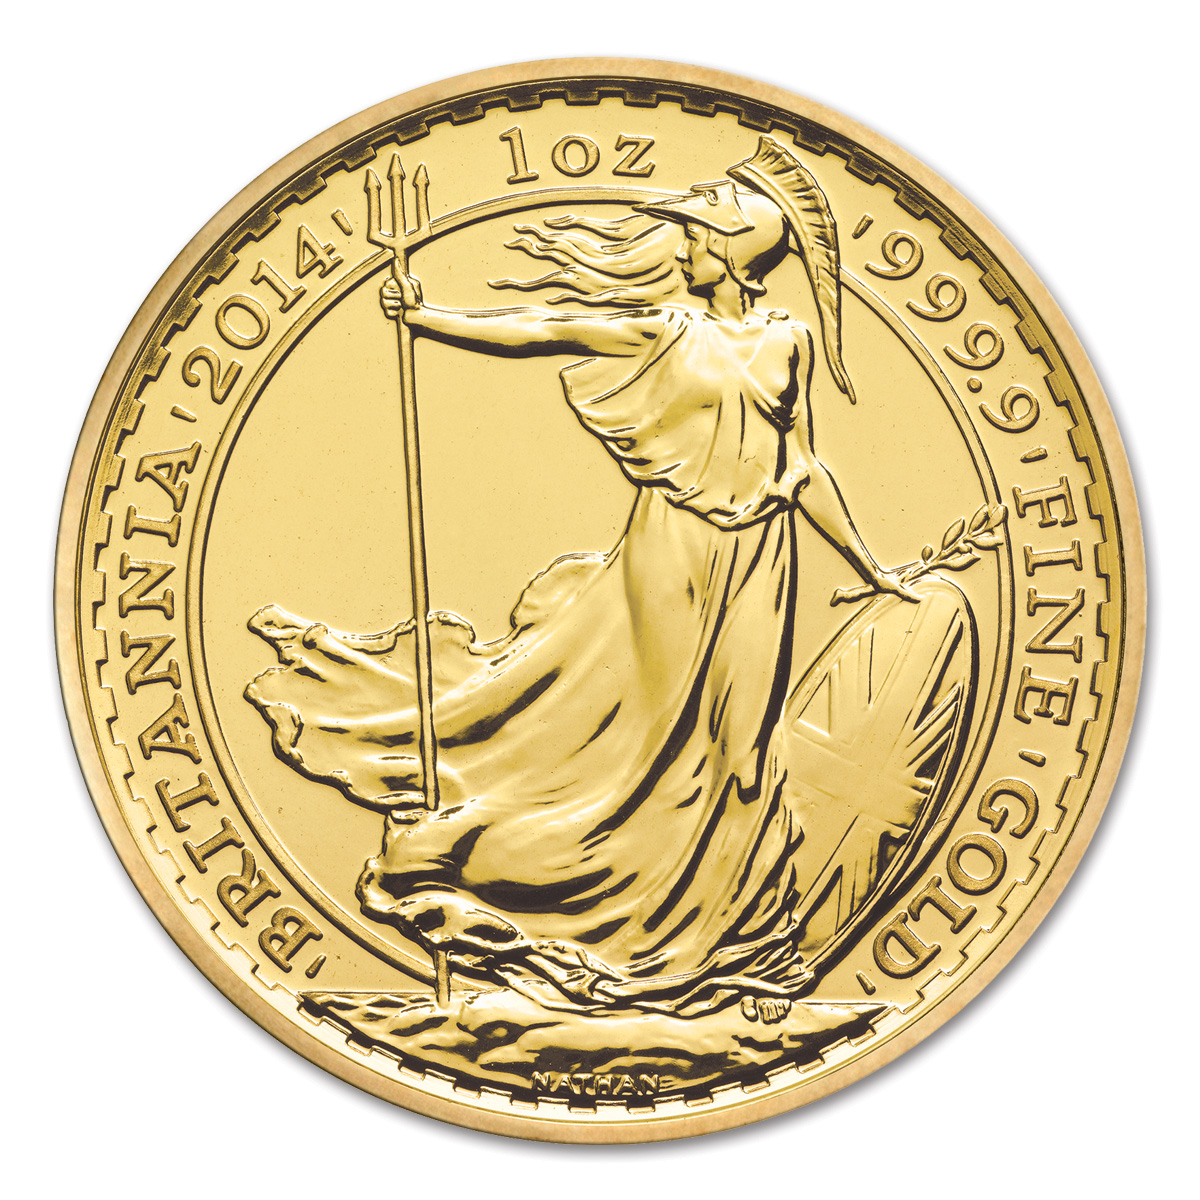 2014 Gold Britannia Royal Mint Gold Bullion Co